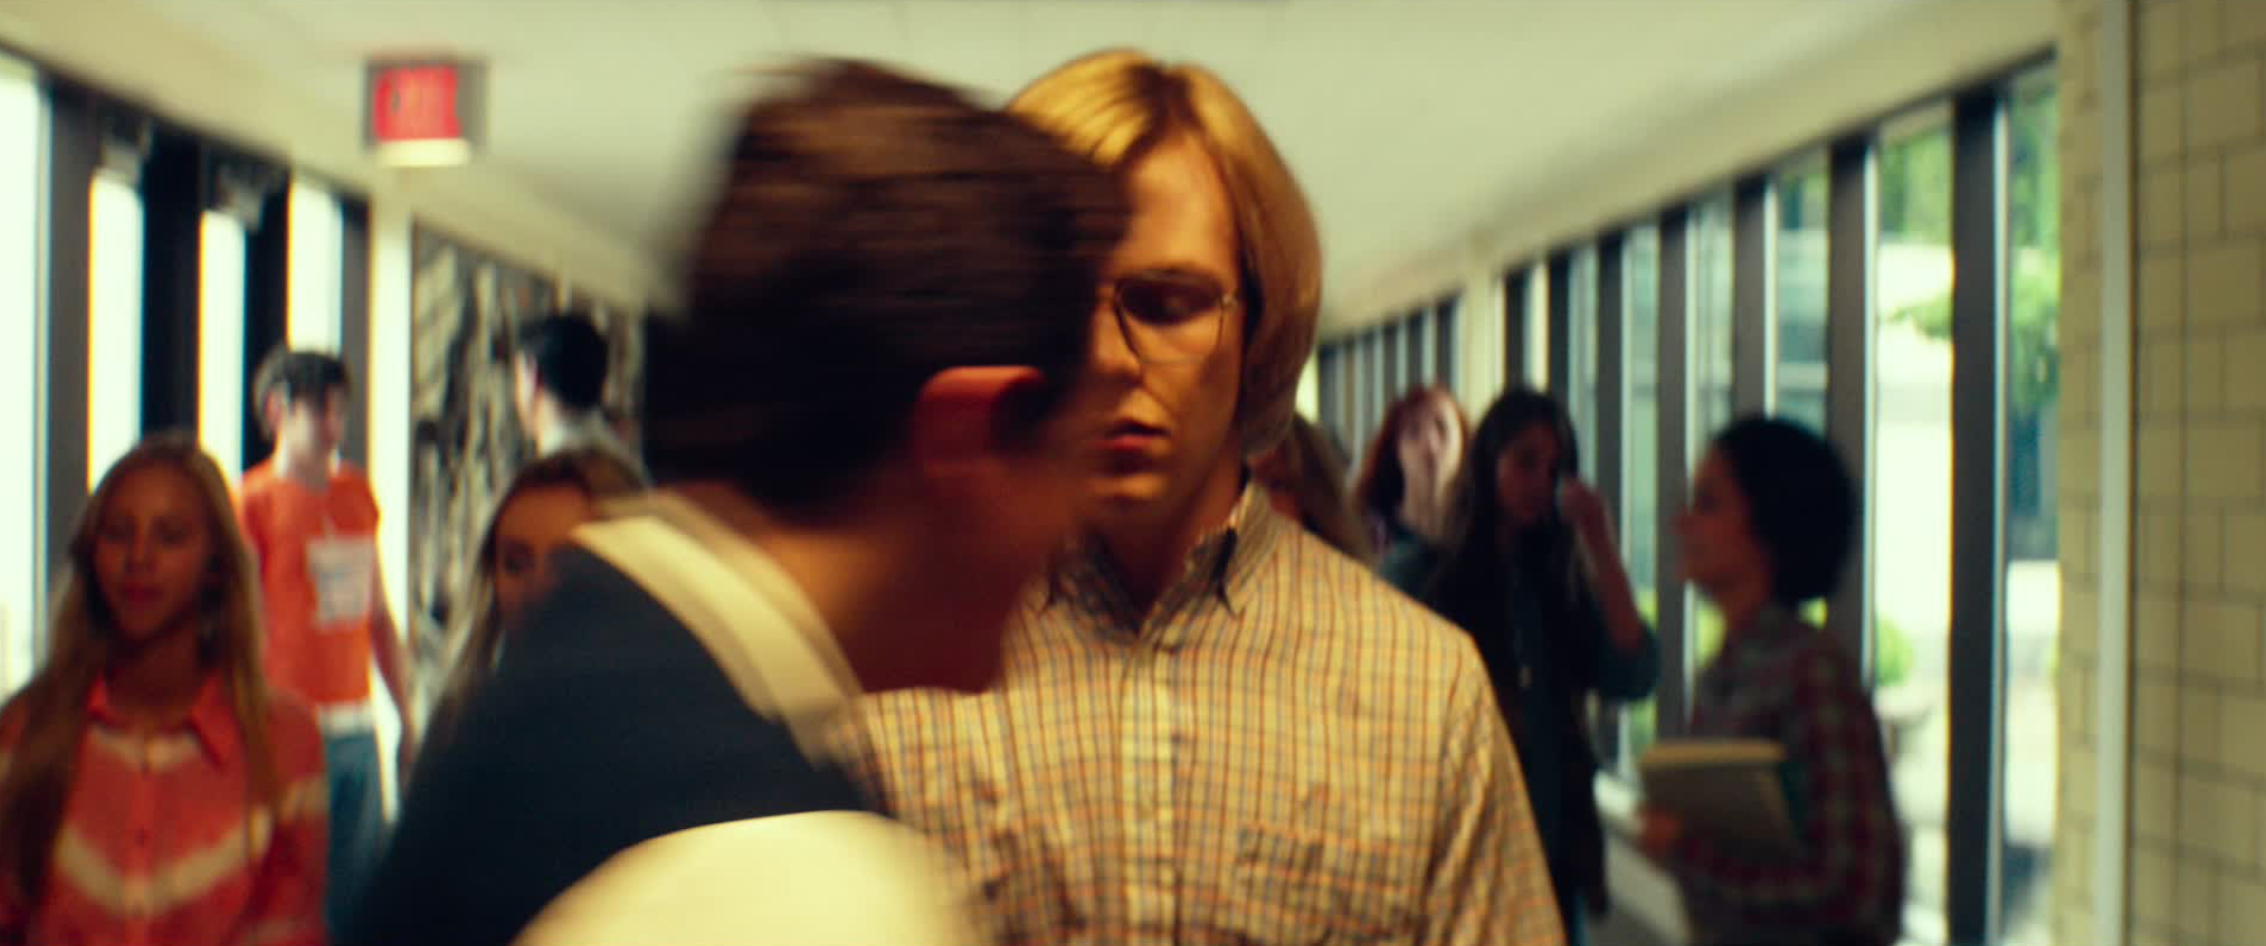 My Friend Dahmer: The Dilemma Between Disgust and Empathy - Jenna explores explores the conundrum of My Friend Dahmer – an open ended question of just how much empathy you can truly afford someone who committed horrific crimes.